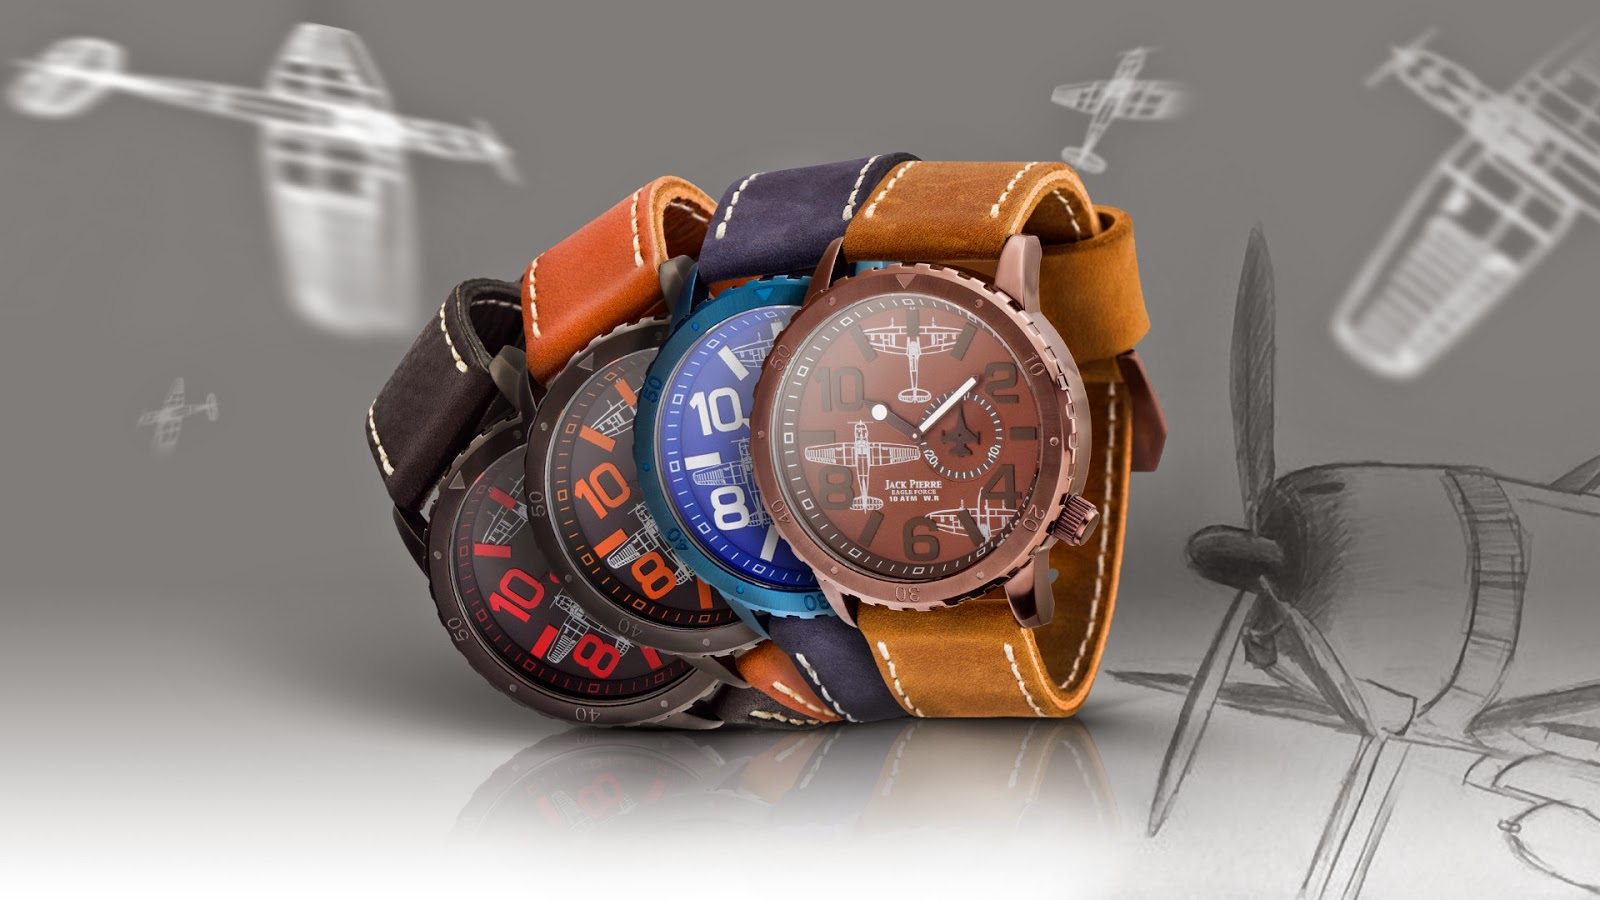 A Great Collection Of Beautiful Watches- Fully Water Proof